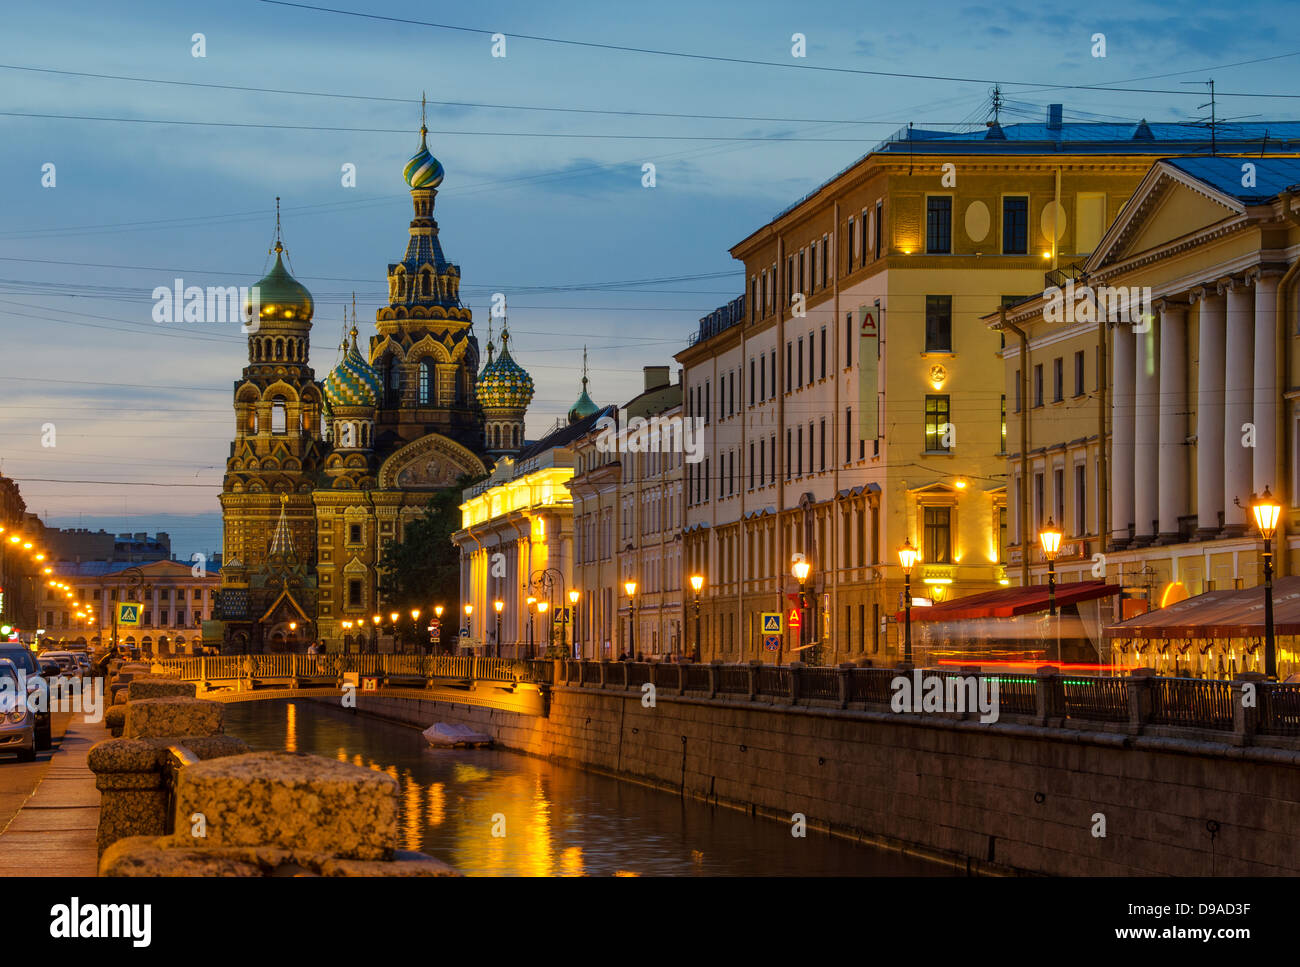 Church of Our Savior on Spilled Blood, St. Petersburg, Russia at night - Stock Image